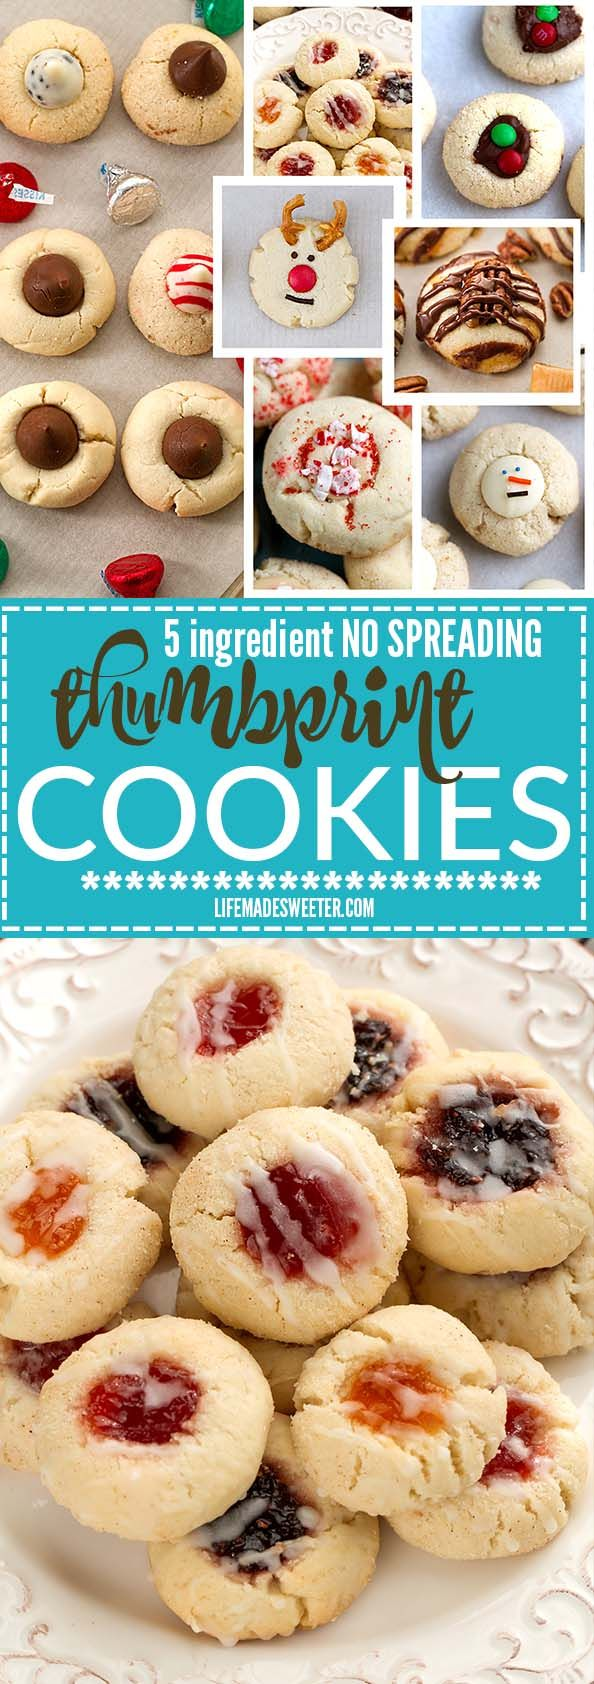 Classic Shortbread Thumbprint Cookies - an easy 5 ingredient dough to make 7 different Christmas cookies including raspberry, apricot and strawberry jam filling, Hershey's Kisses, Nutella and white chocolate with crushed peppermint candy canes! Best of all there's NO spreading or CHILLING required! Perfect for your holiday cookie platter!